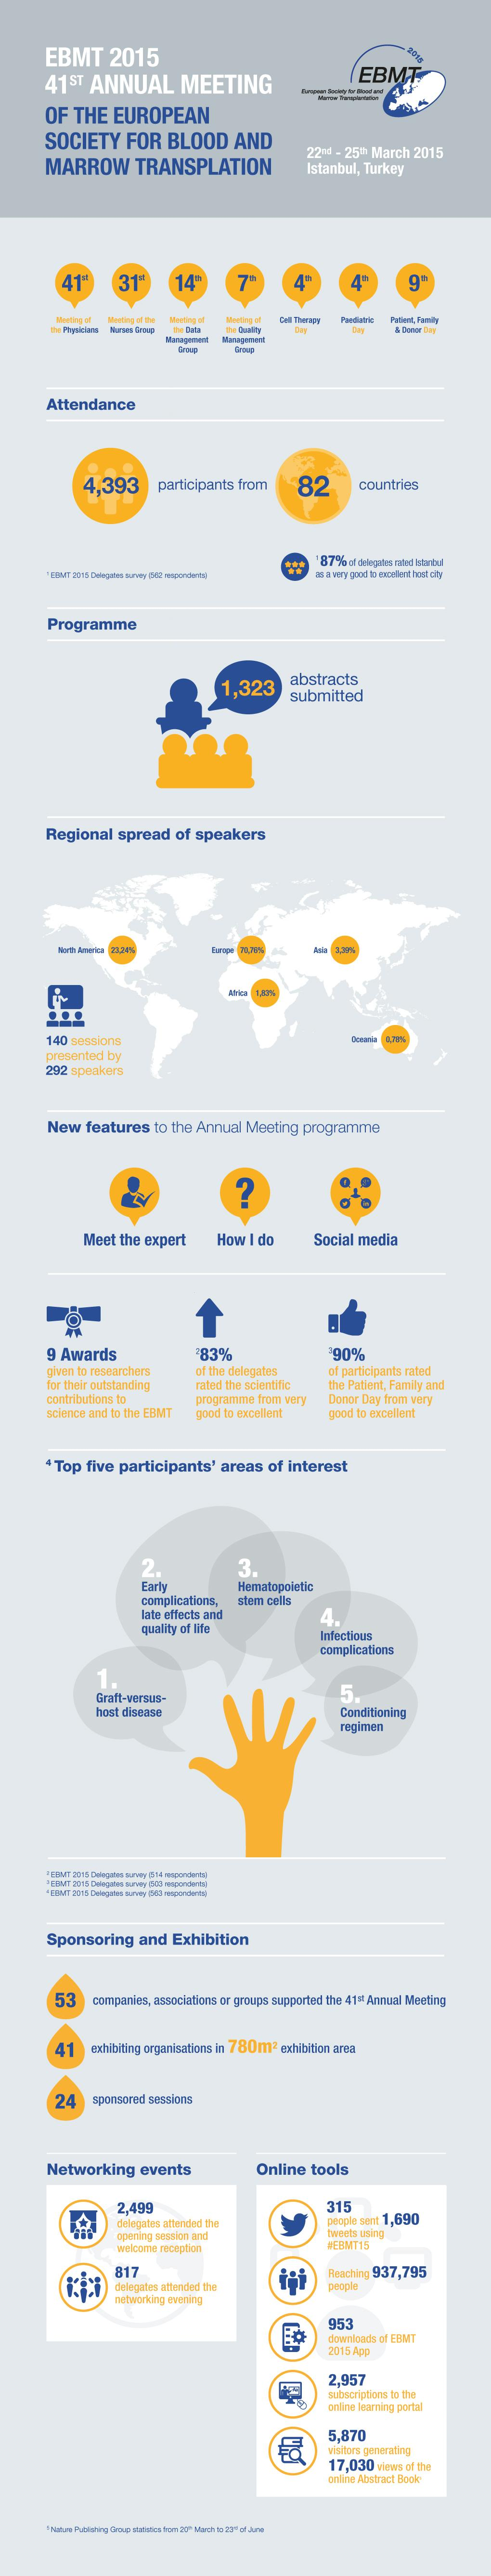 Infographic Report Annual Meeting EBMT 2015